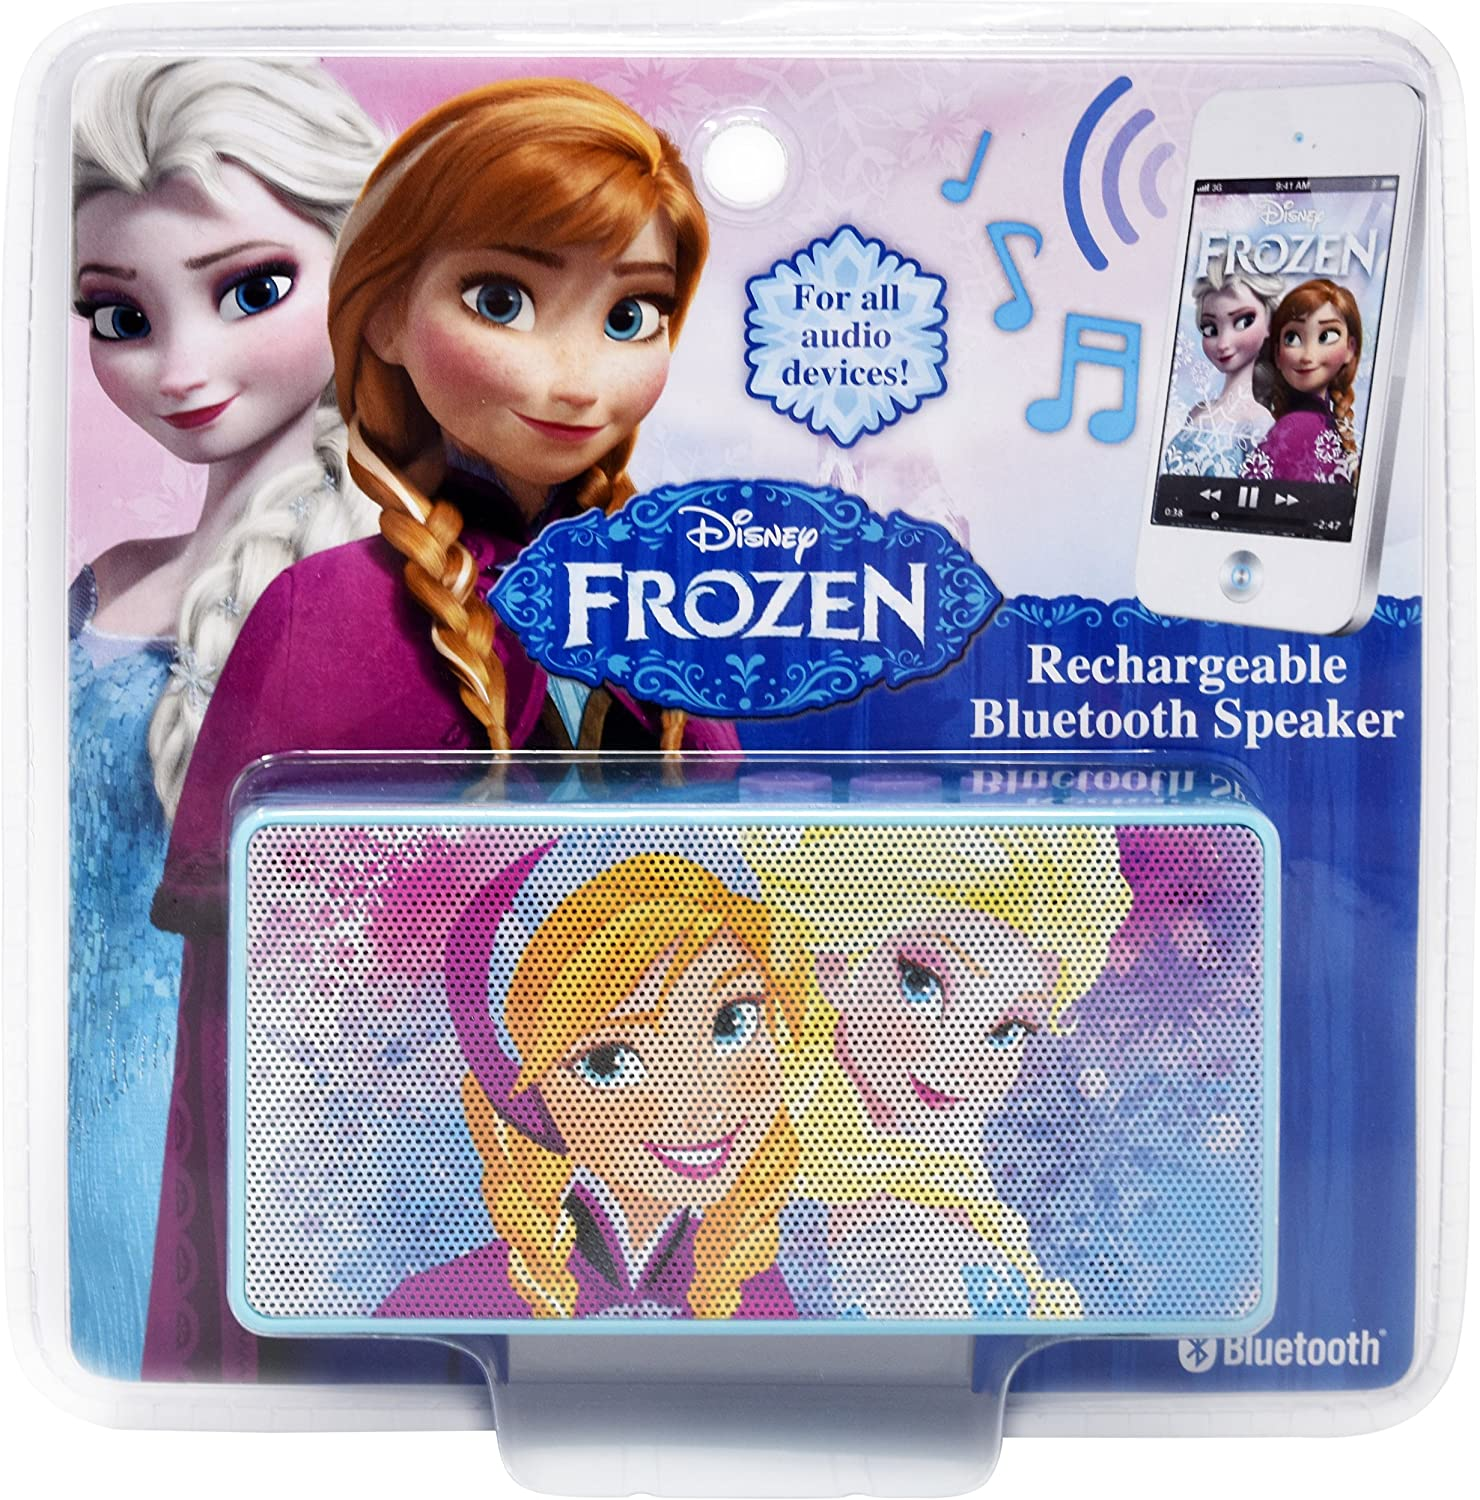 Smartphone MP3 Player Or Other Bluetooth-Enabled Device Wireless Rechargeable Portable Speaker with 3.5mm Headphone Port Device Stream Music From Computer Disney Frozen Bluetooth Speaker Tablet